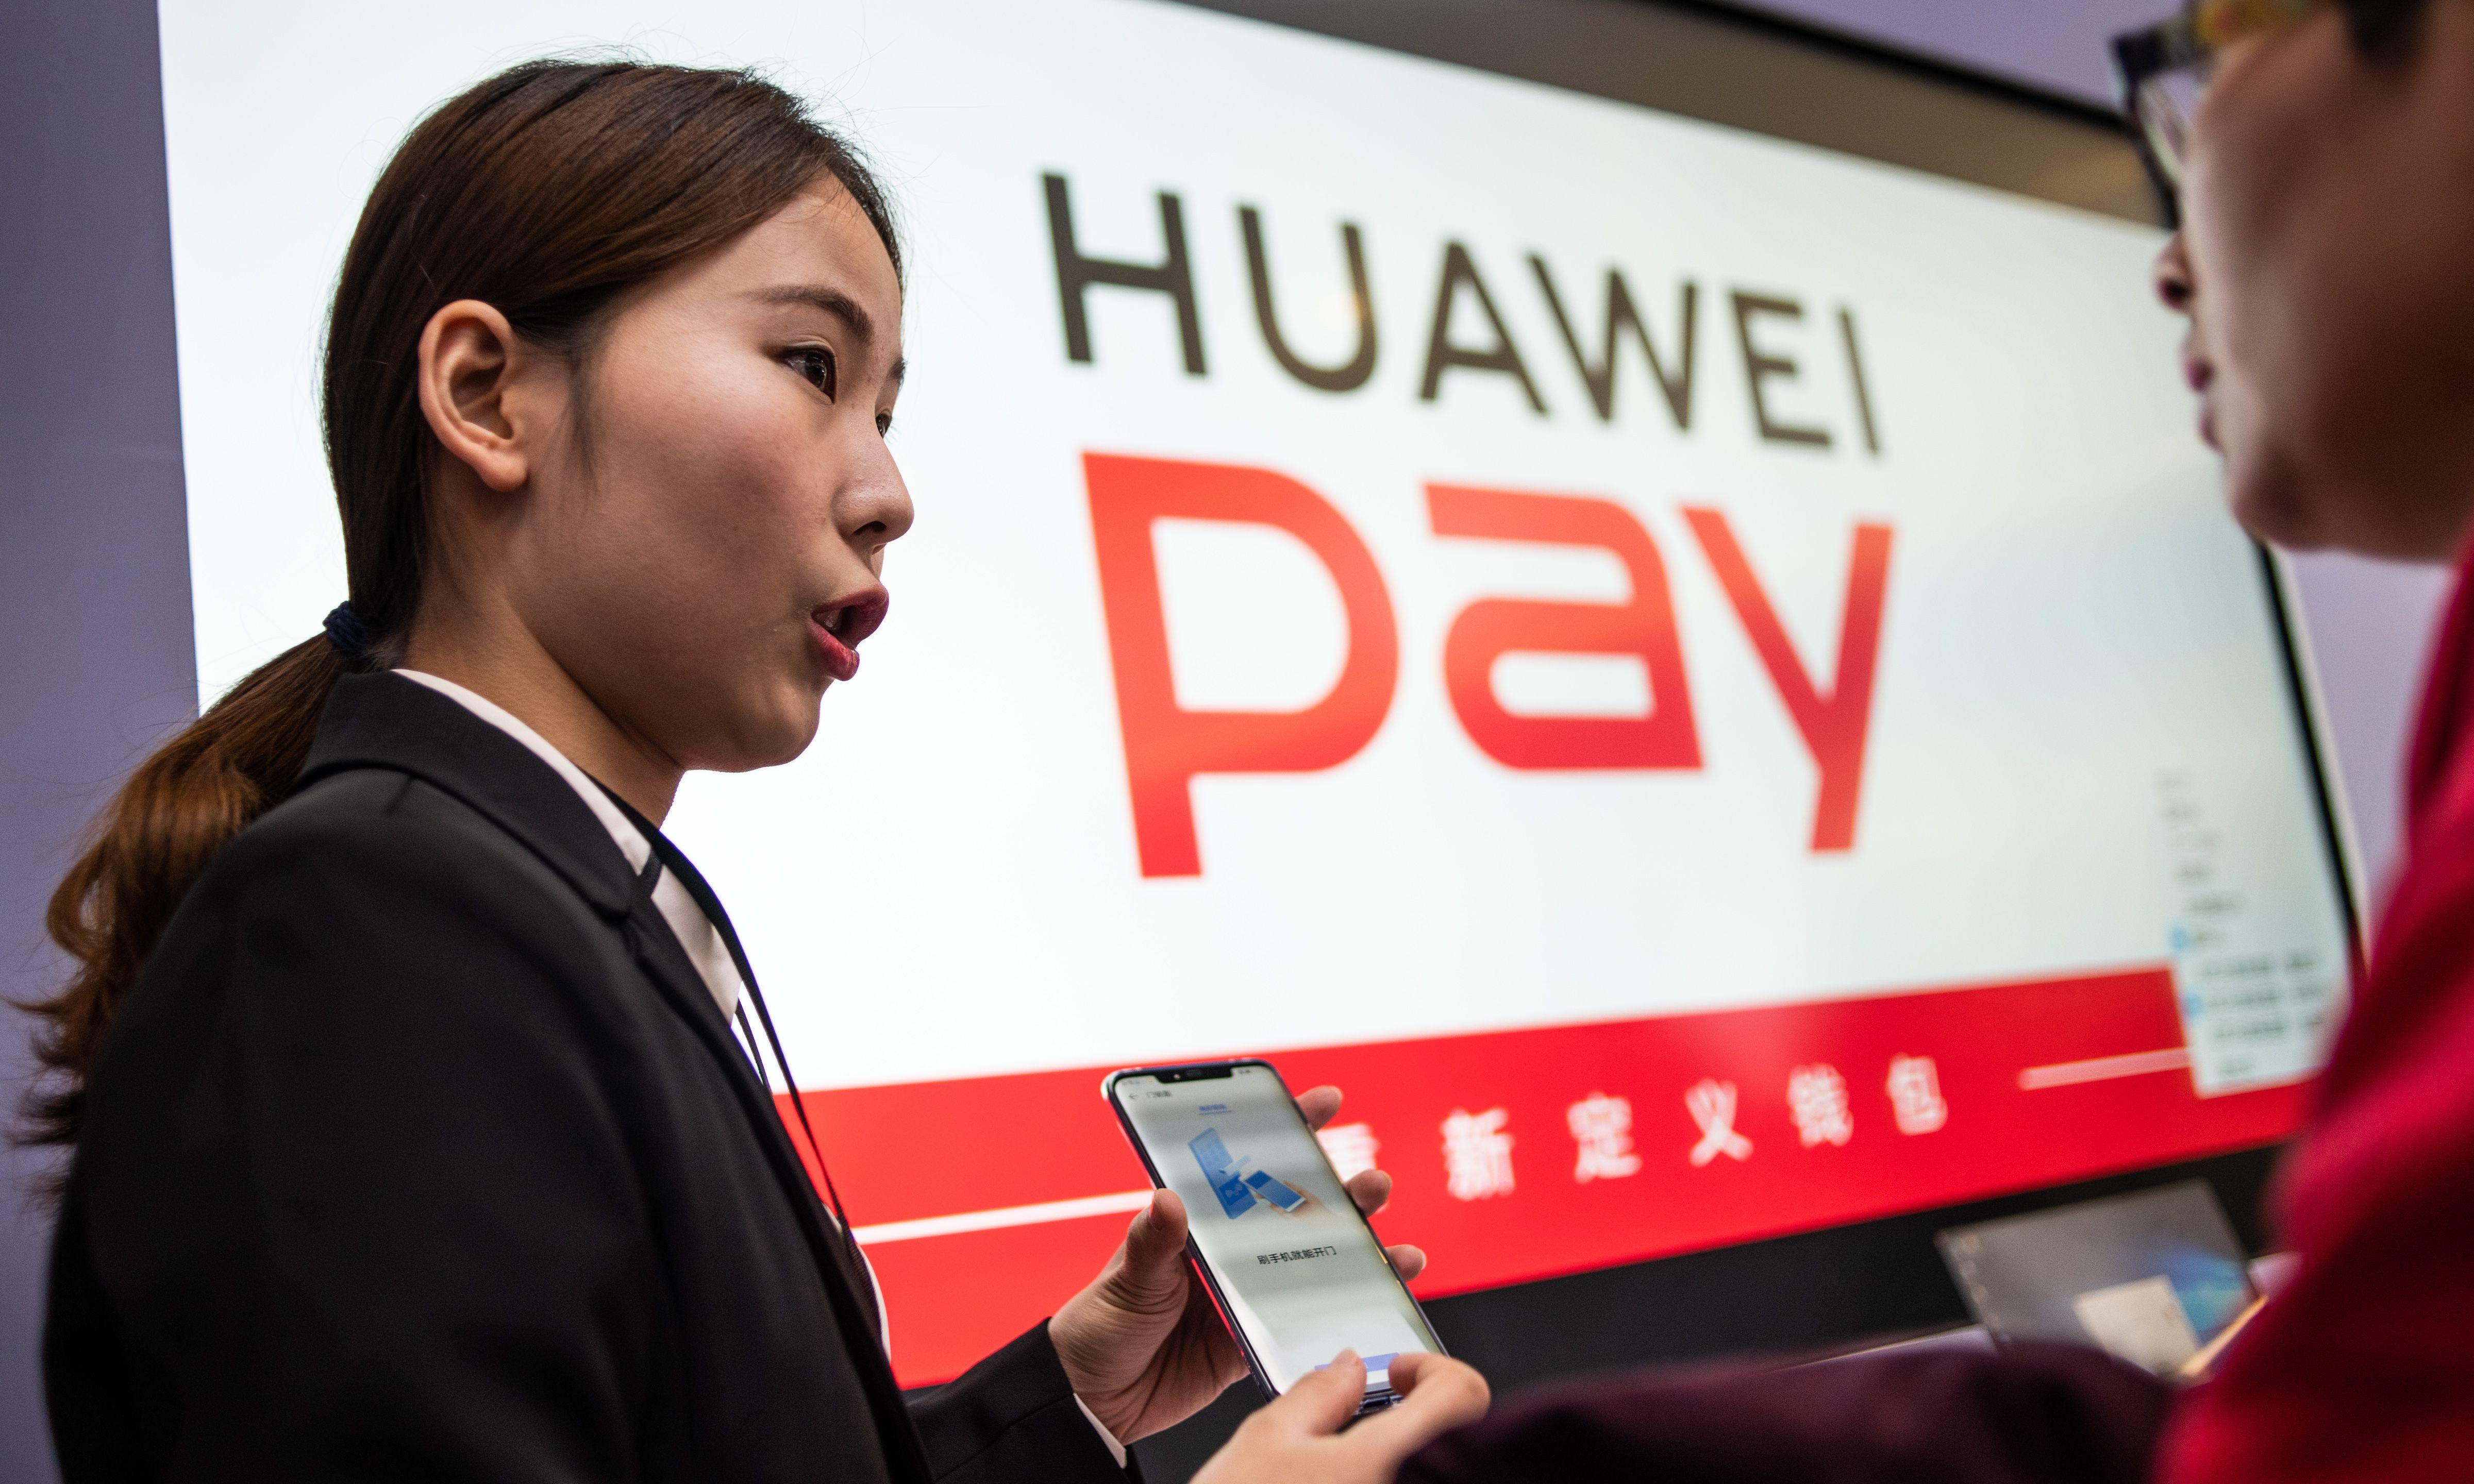 Huawei's problems deepen as western suspicions mount